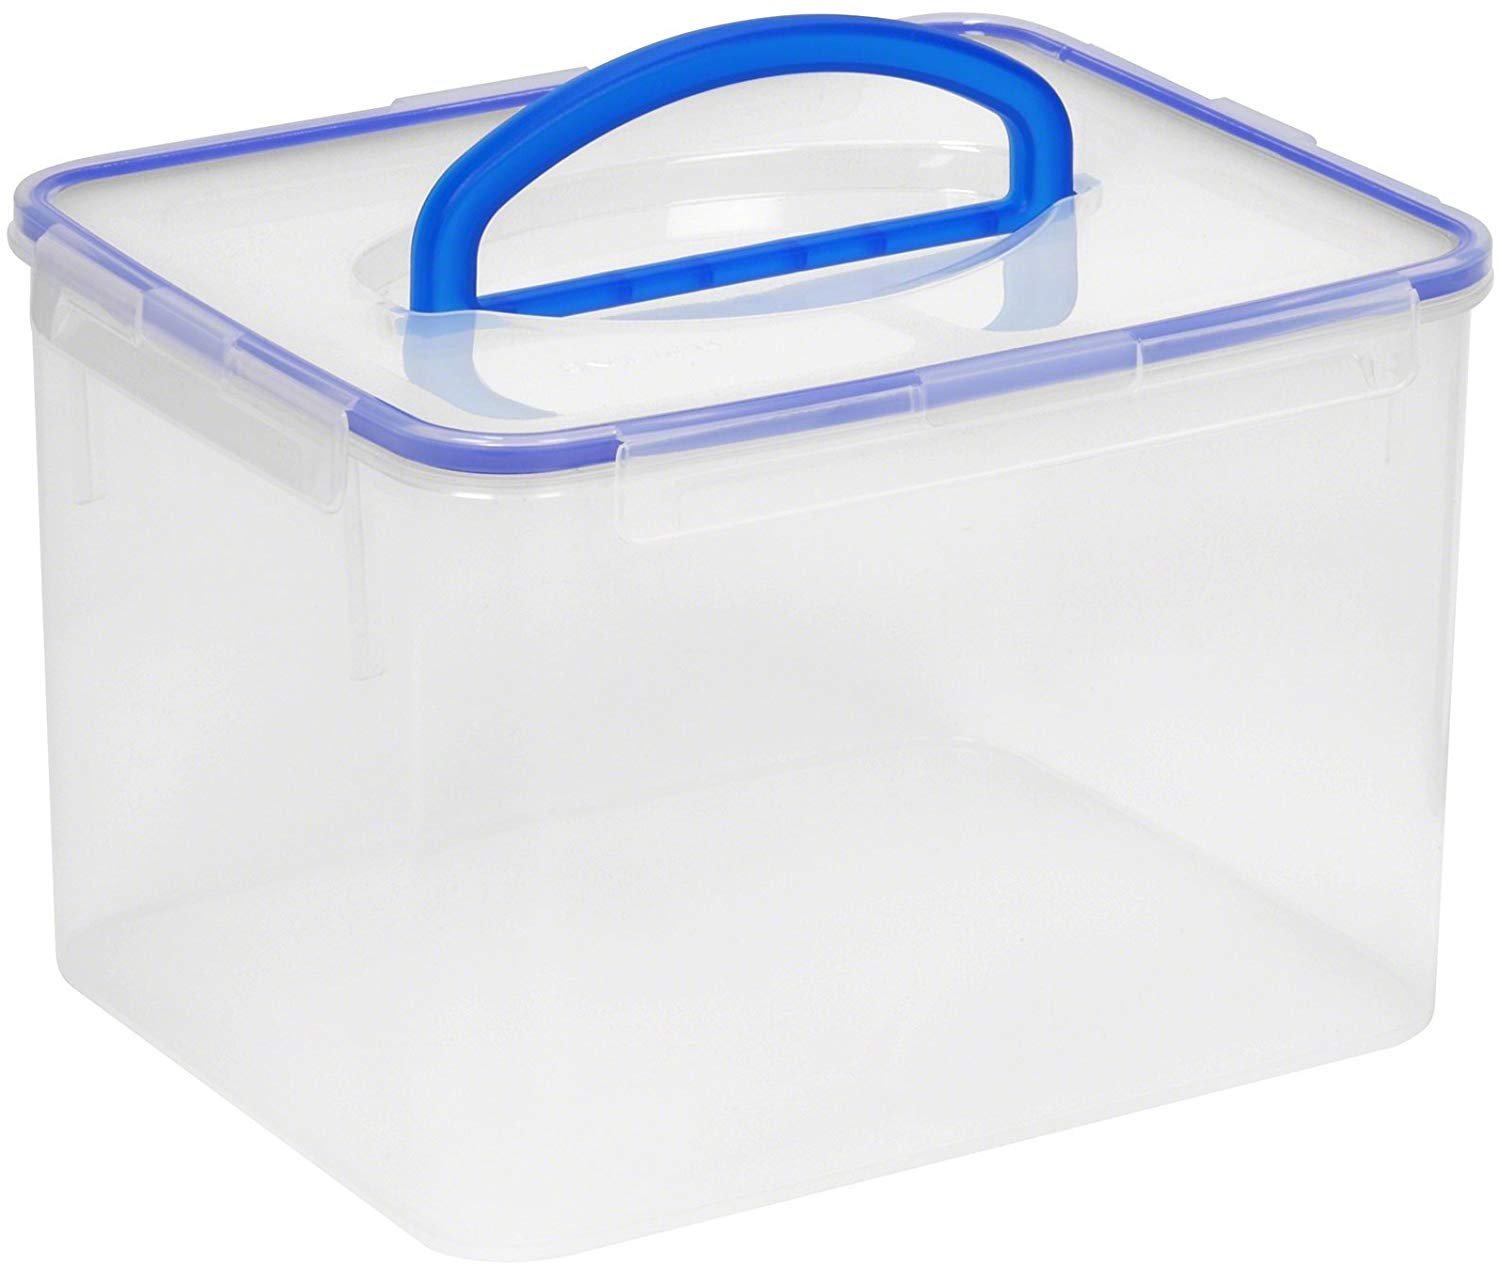 232 oz. Modular Snapware Container w Handle Lid